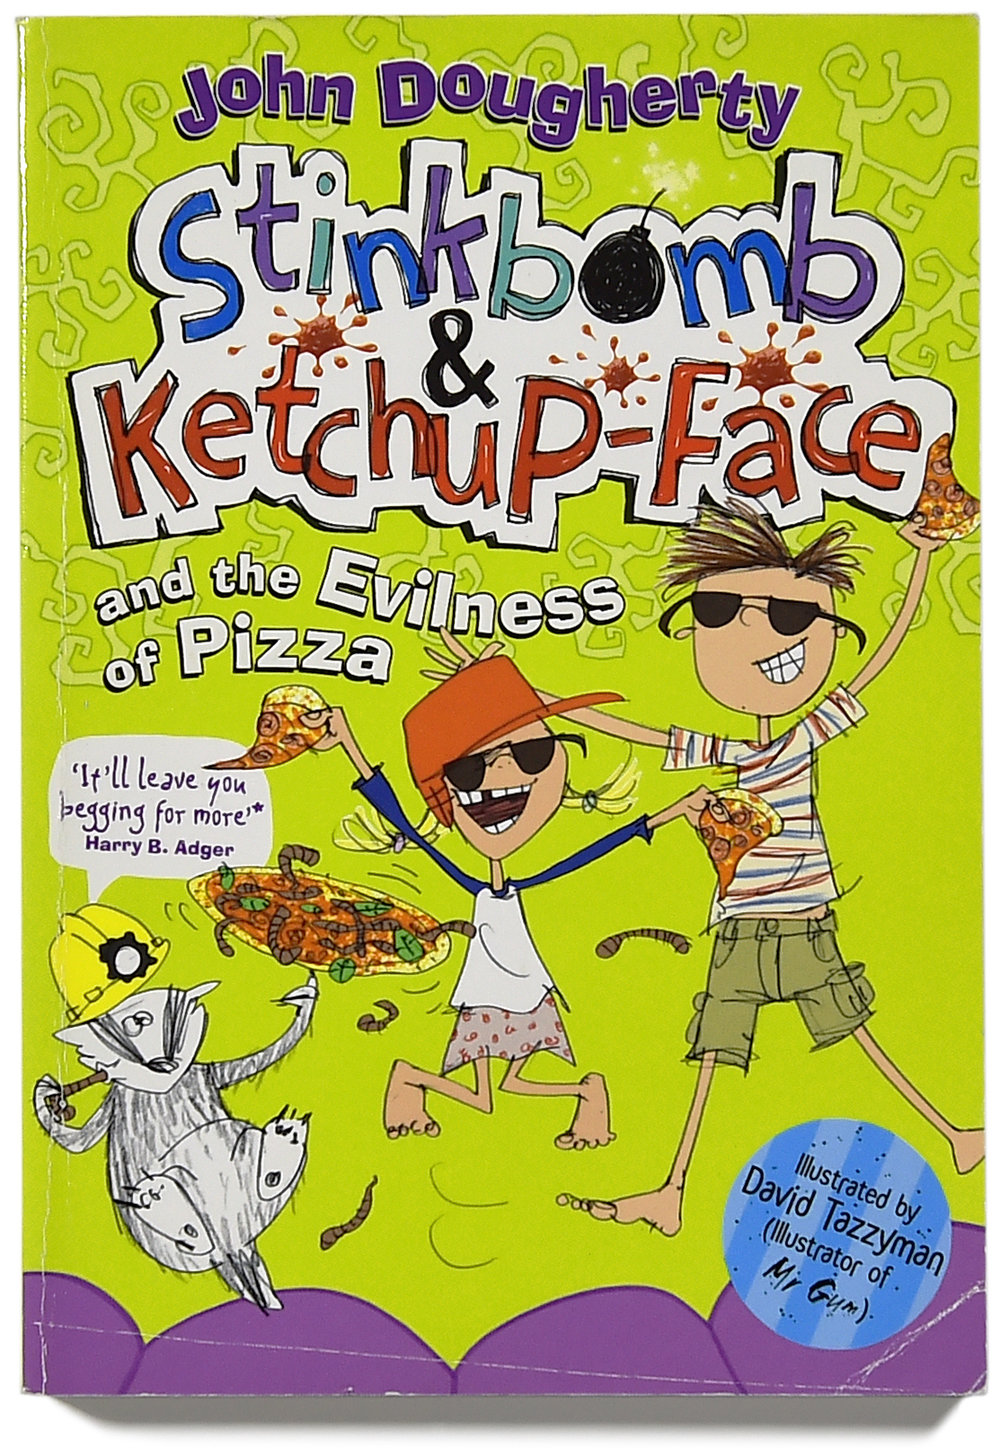 Stinkbomb & Ketchup-Face and the Evilness of Pizza cover.FIN.jpg